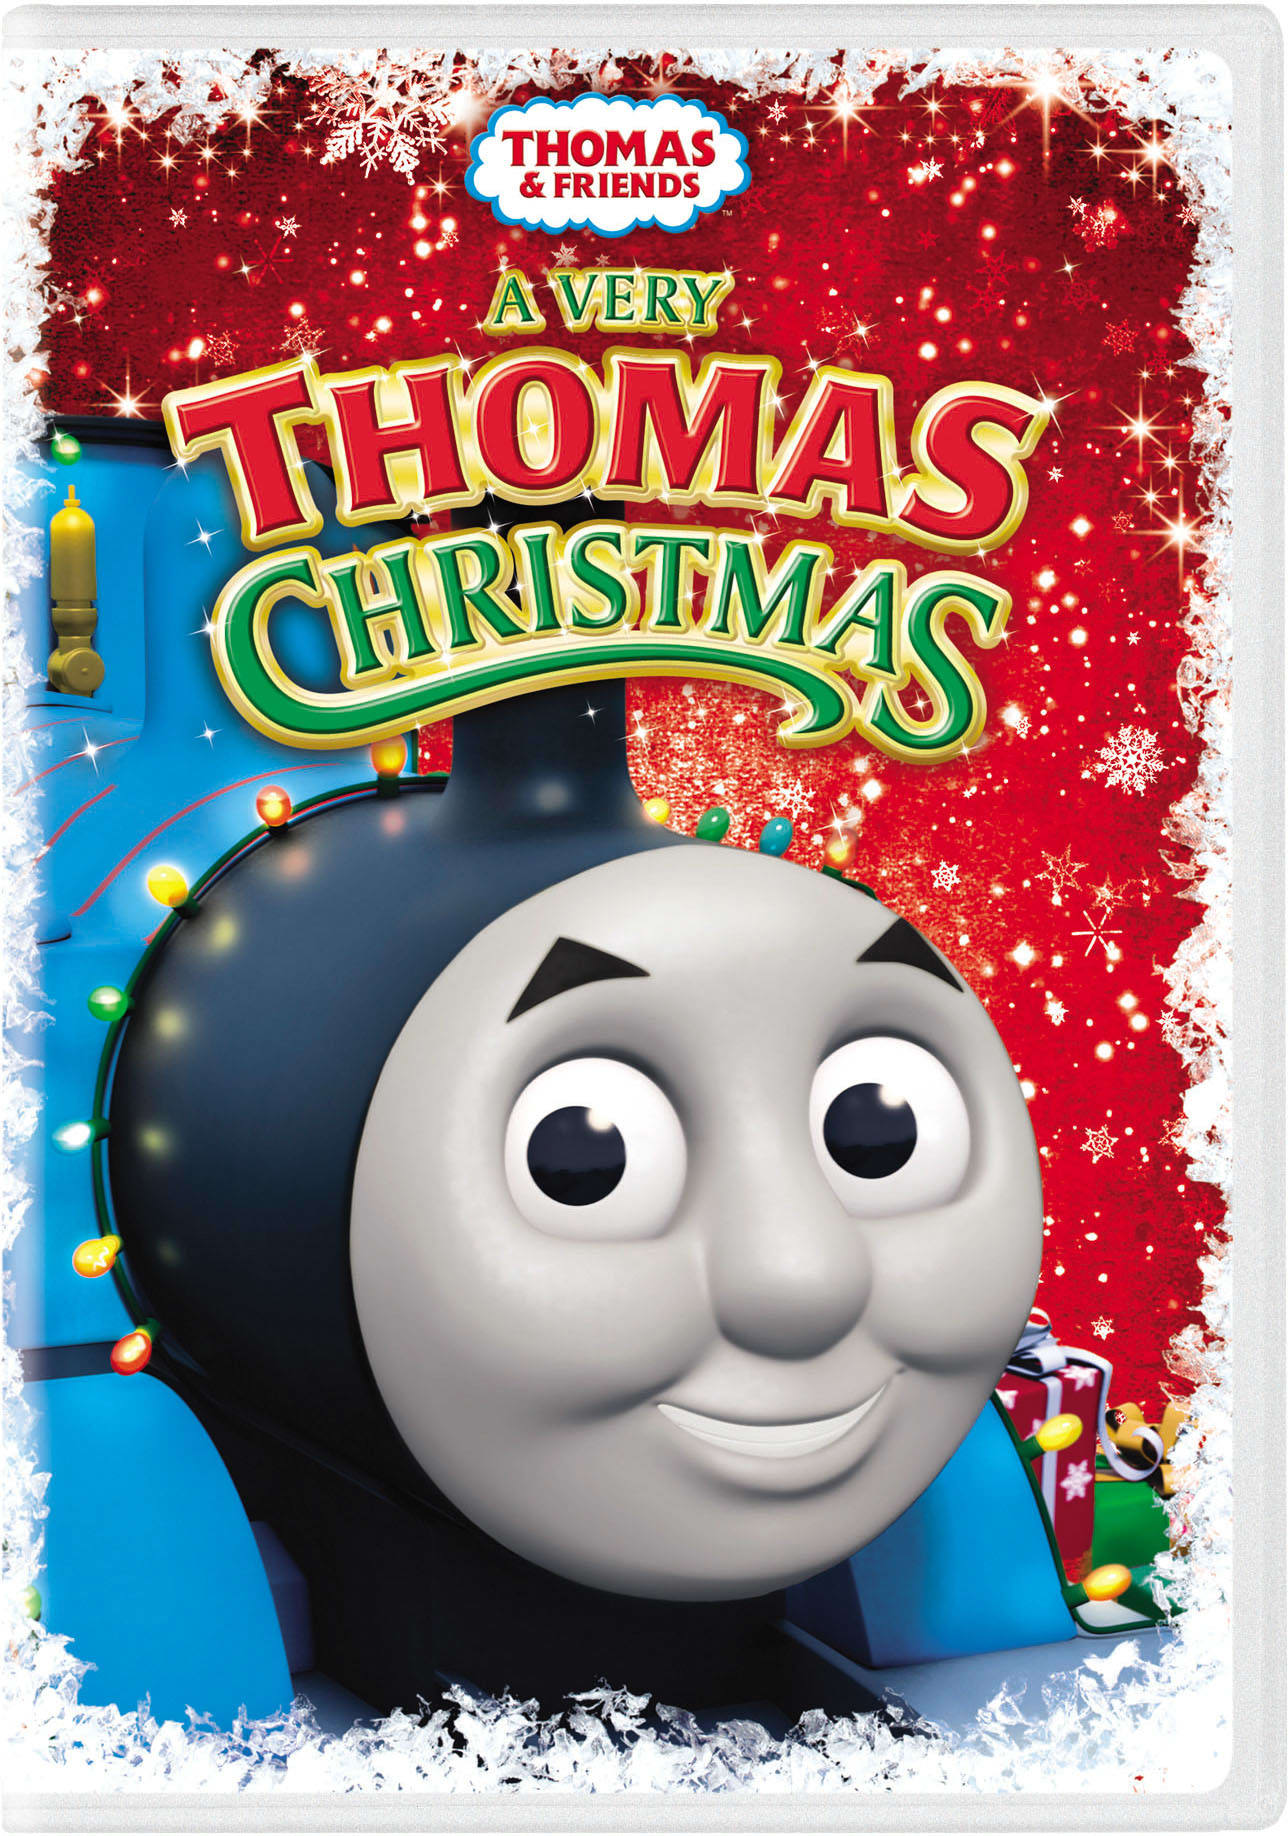 Thomas & Friends: A Very Thomas Christmas (2016) [DVD]